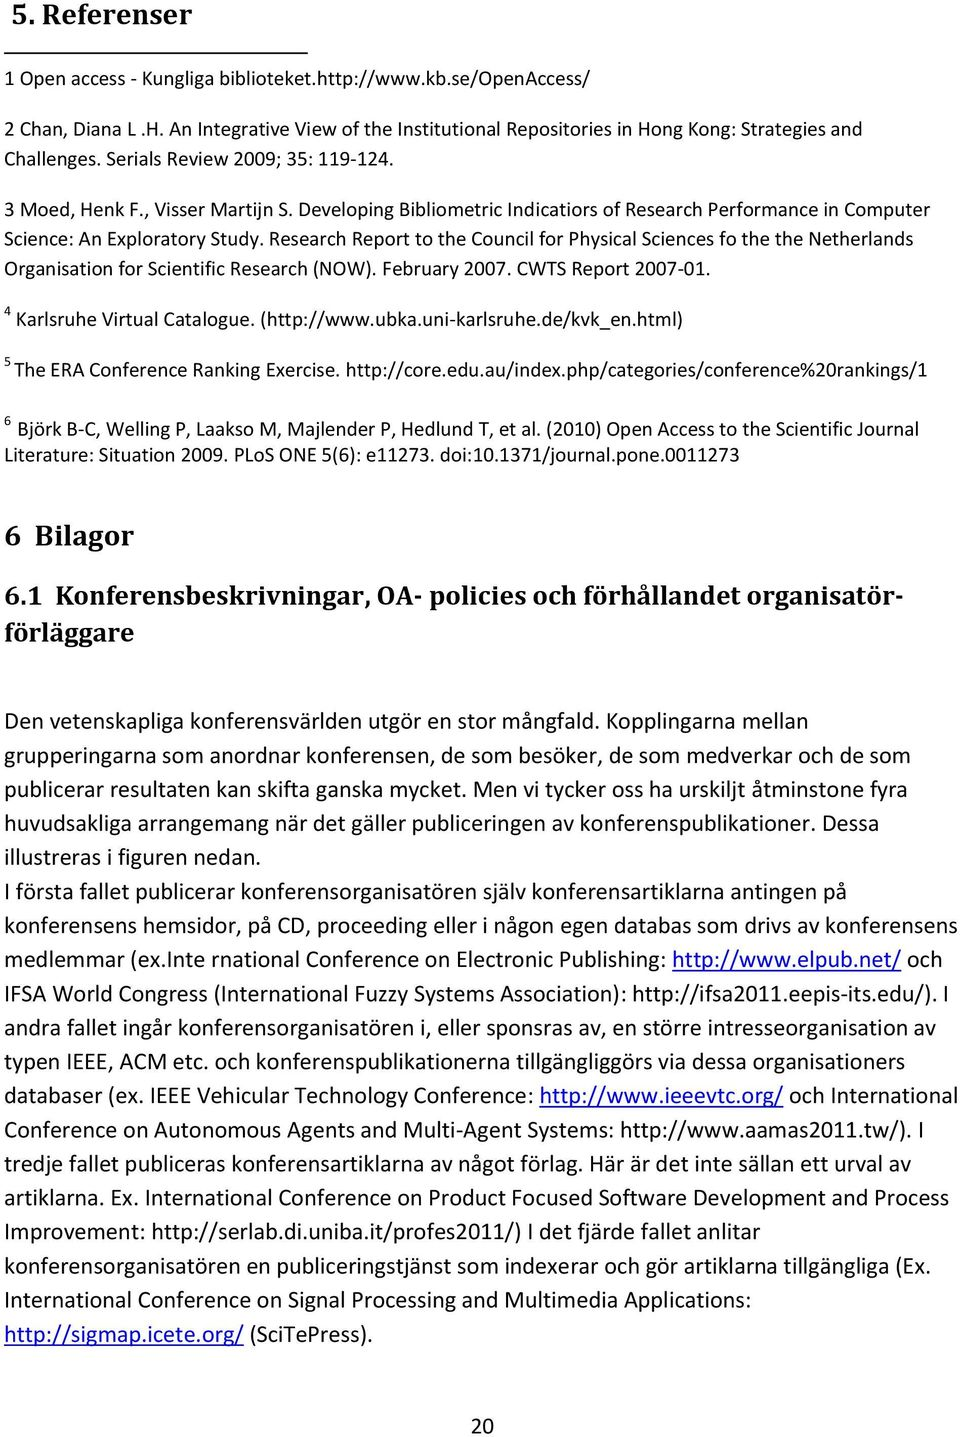 Research Report to the Council for Physical Sciences fo the the Netherlands Organisation for Scientific Research (NOW). February 2007. CWTS Report 2007-01. 4 Karlsruhe Virtual Catalogue. (http://www.